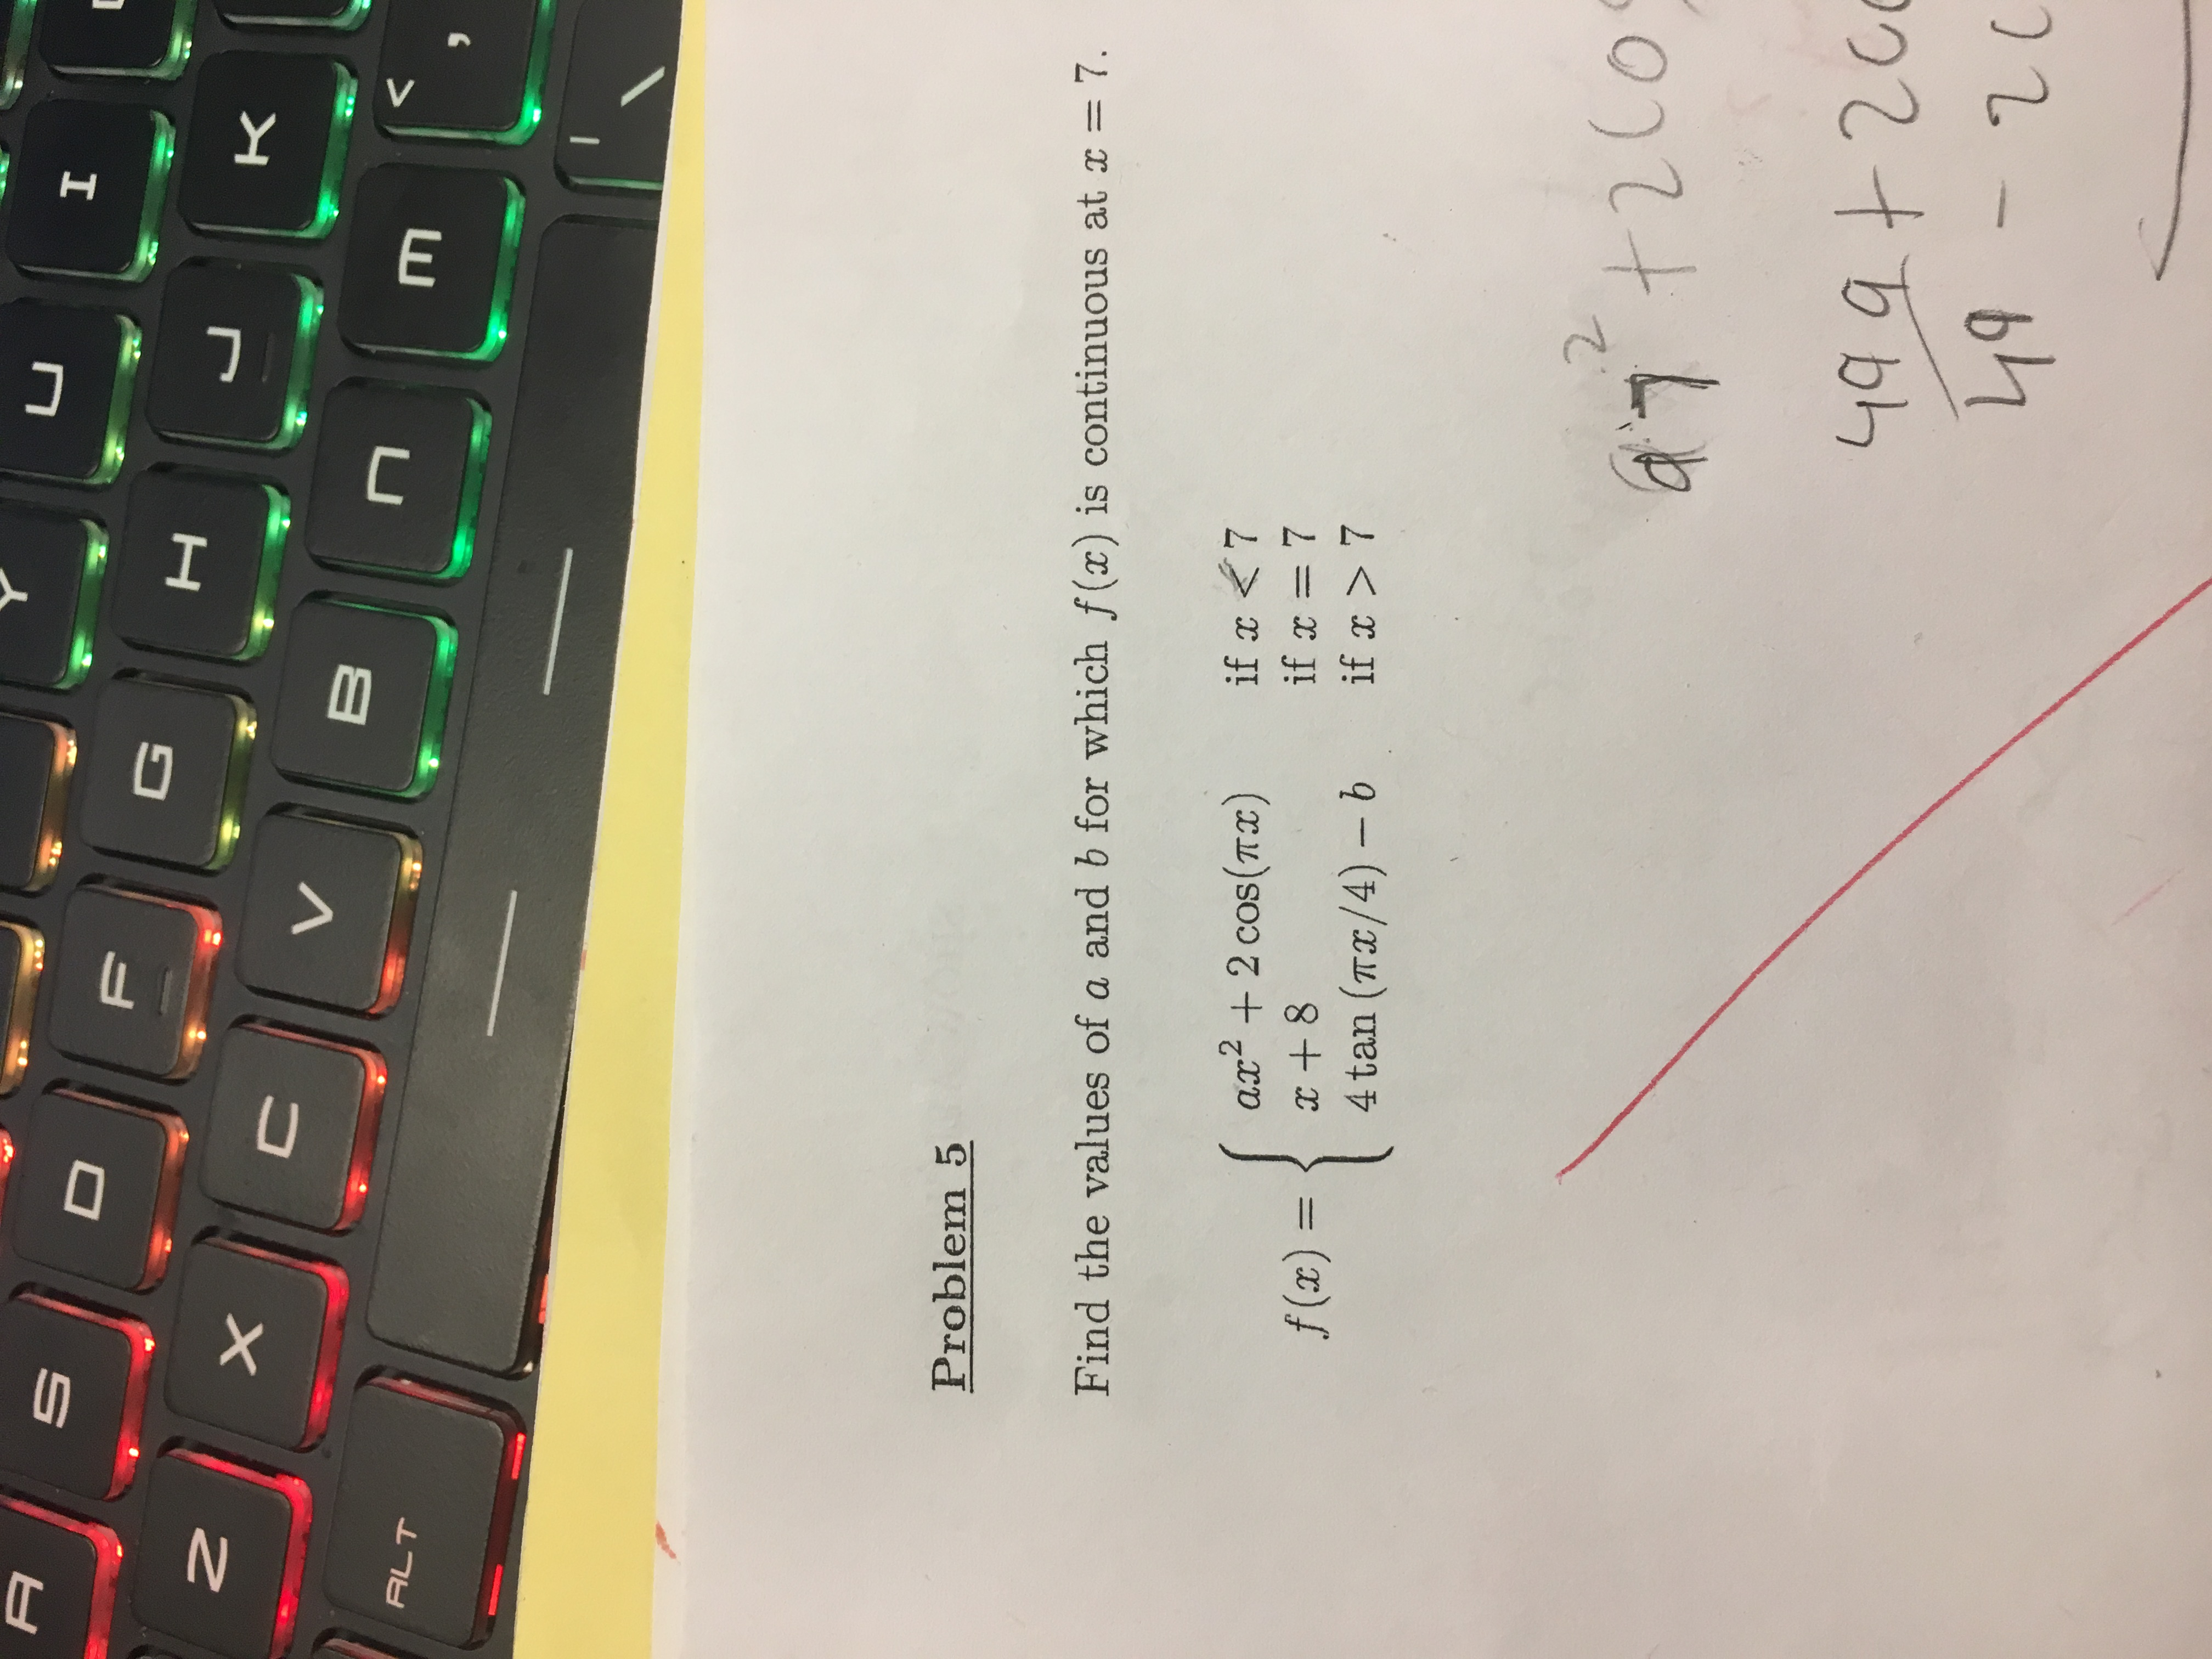 I A D F к X V B ALT Problem 5 Find the values of a and b for which f(x) is continuous at x 7 if x<7 if x= 7 if x >7 ax2 cos(Tx) f (x) = 1 4 tan (TI/4) - b 2 Co +200 49 94200 49-20 V E -7 U